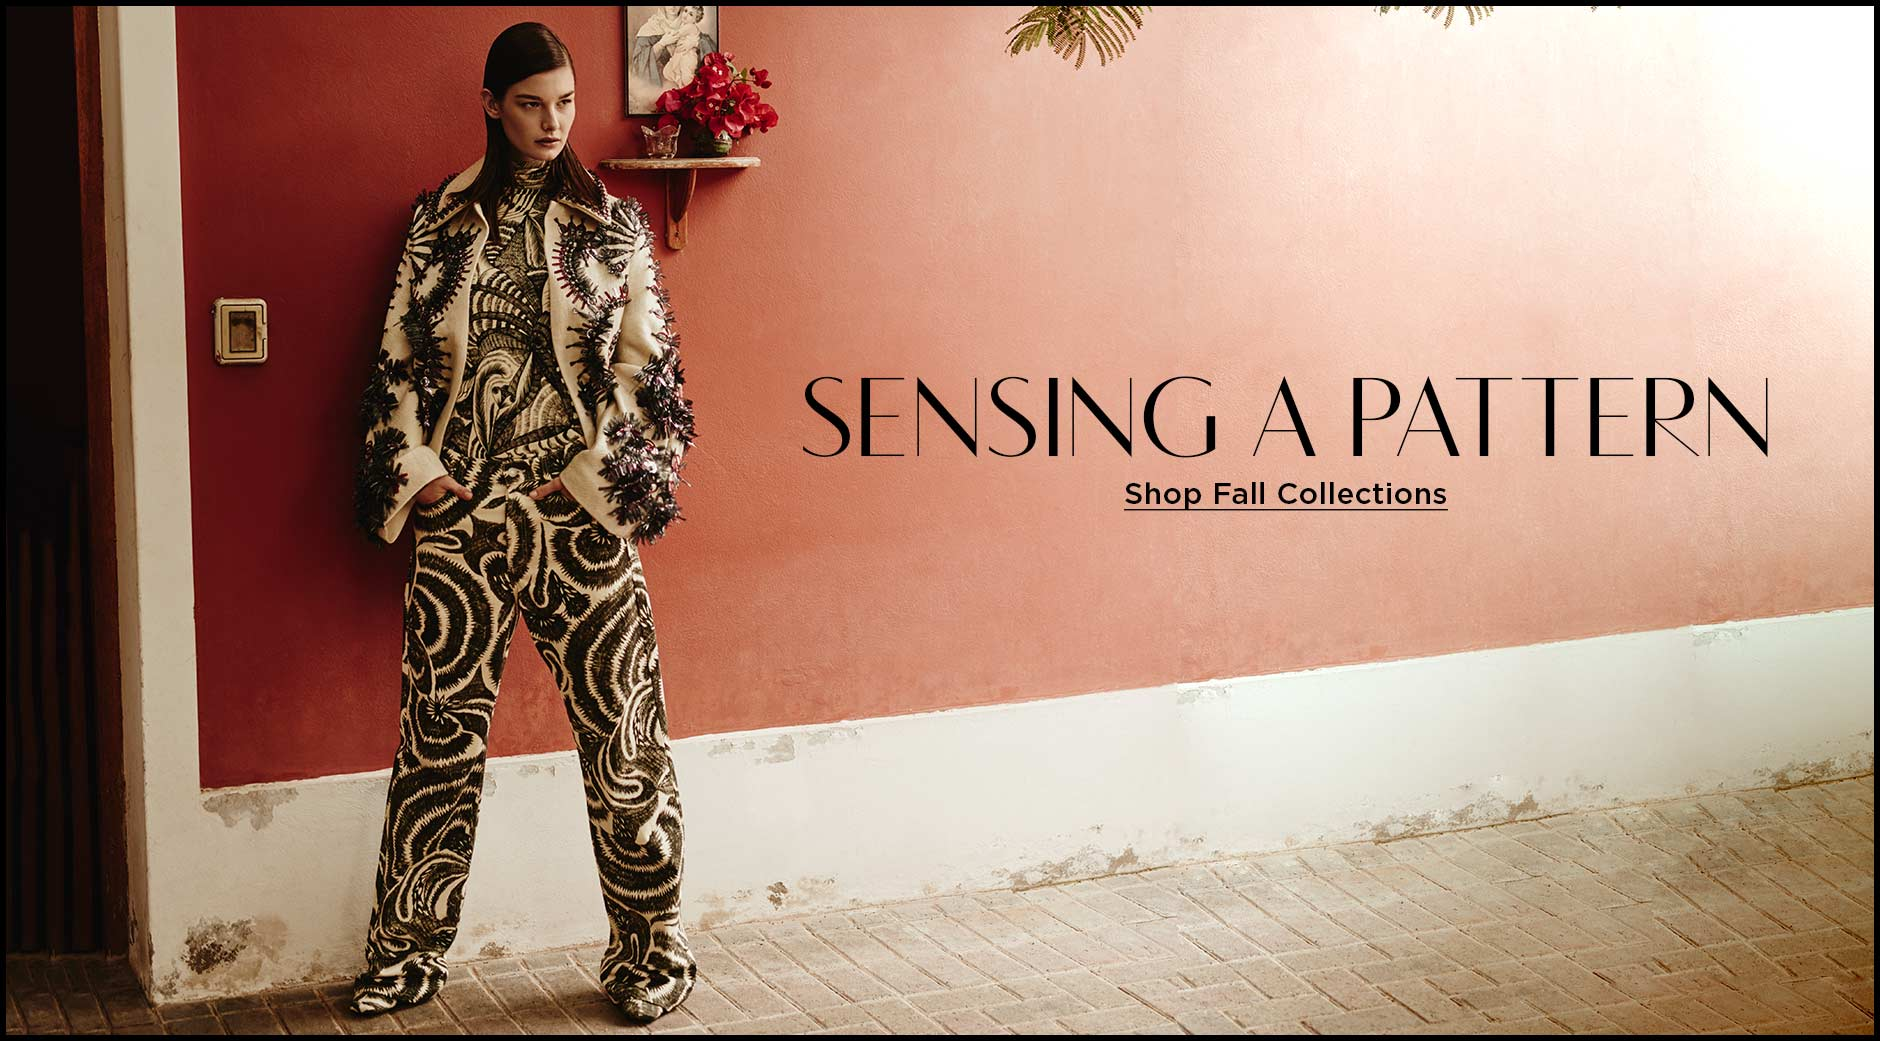 Shop Fall Collections